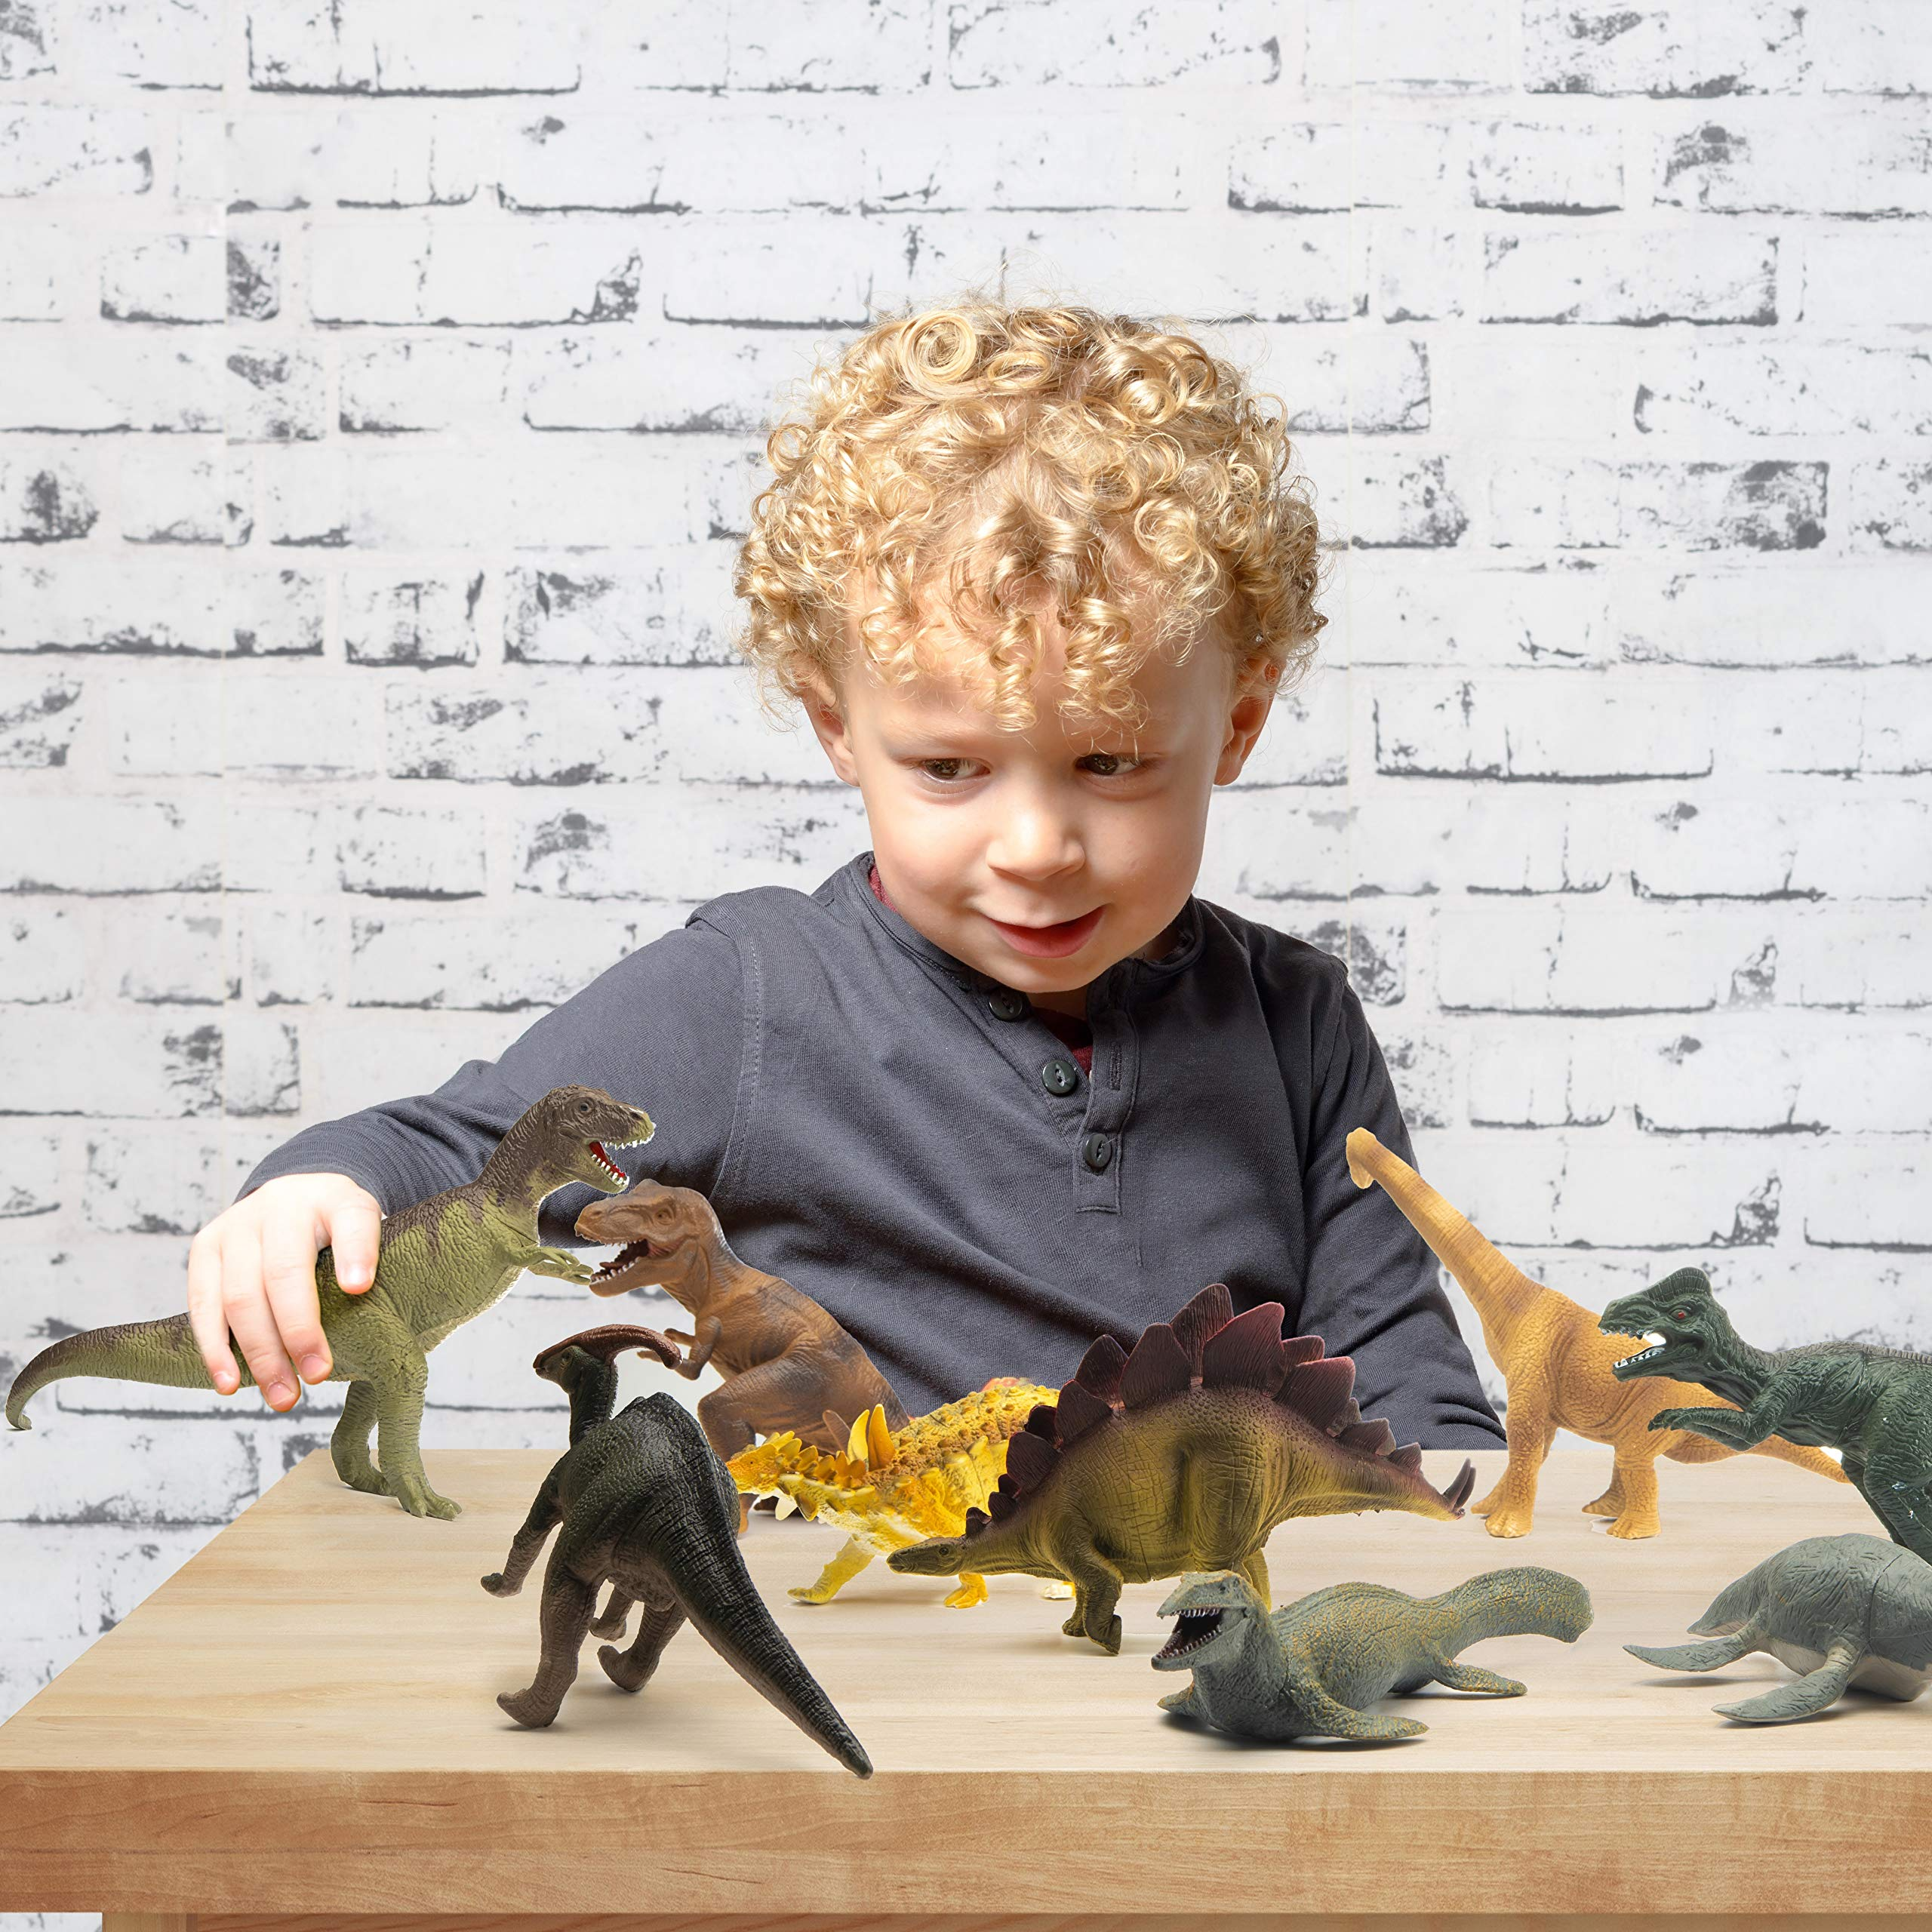 Prextex Realistic Looking 10'' Dinosaurs Pack of 12 Large Plastic Assorted Dinosaur Figures by Prextex (Image #7)